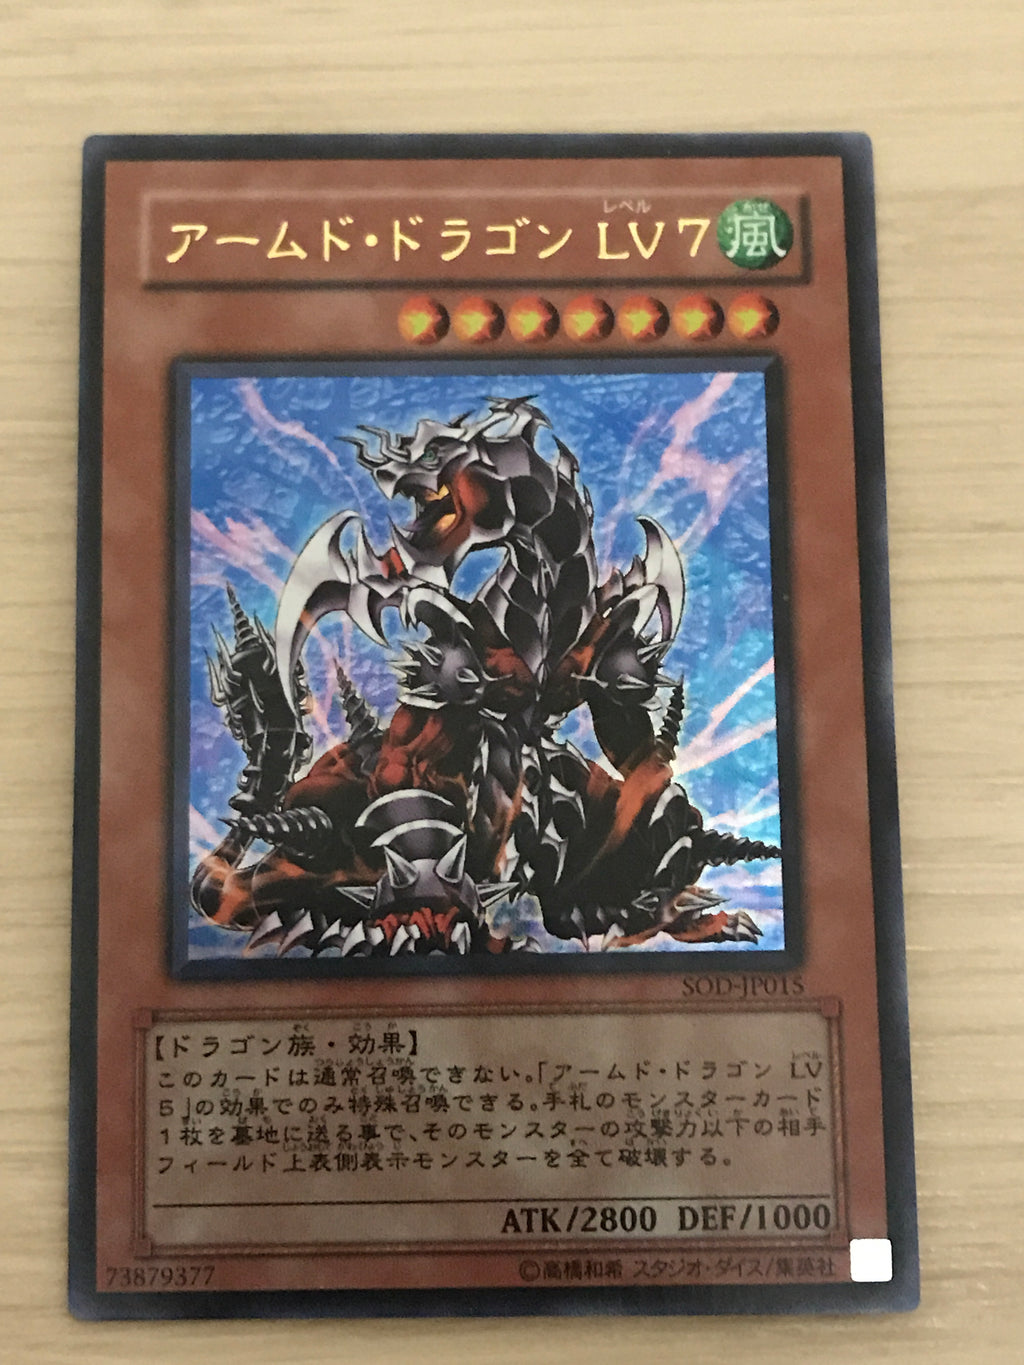 Armed Dragon Lv7 (OCG) - Ultra - SOD-JP015